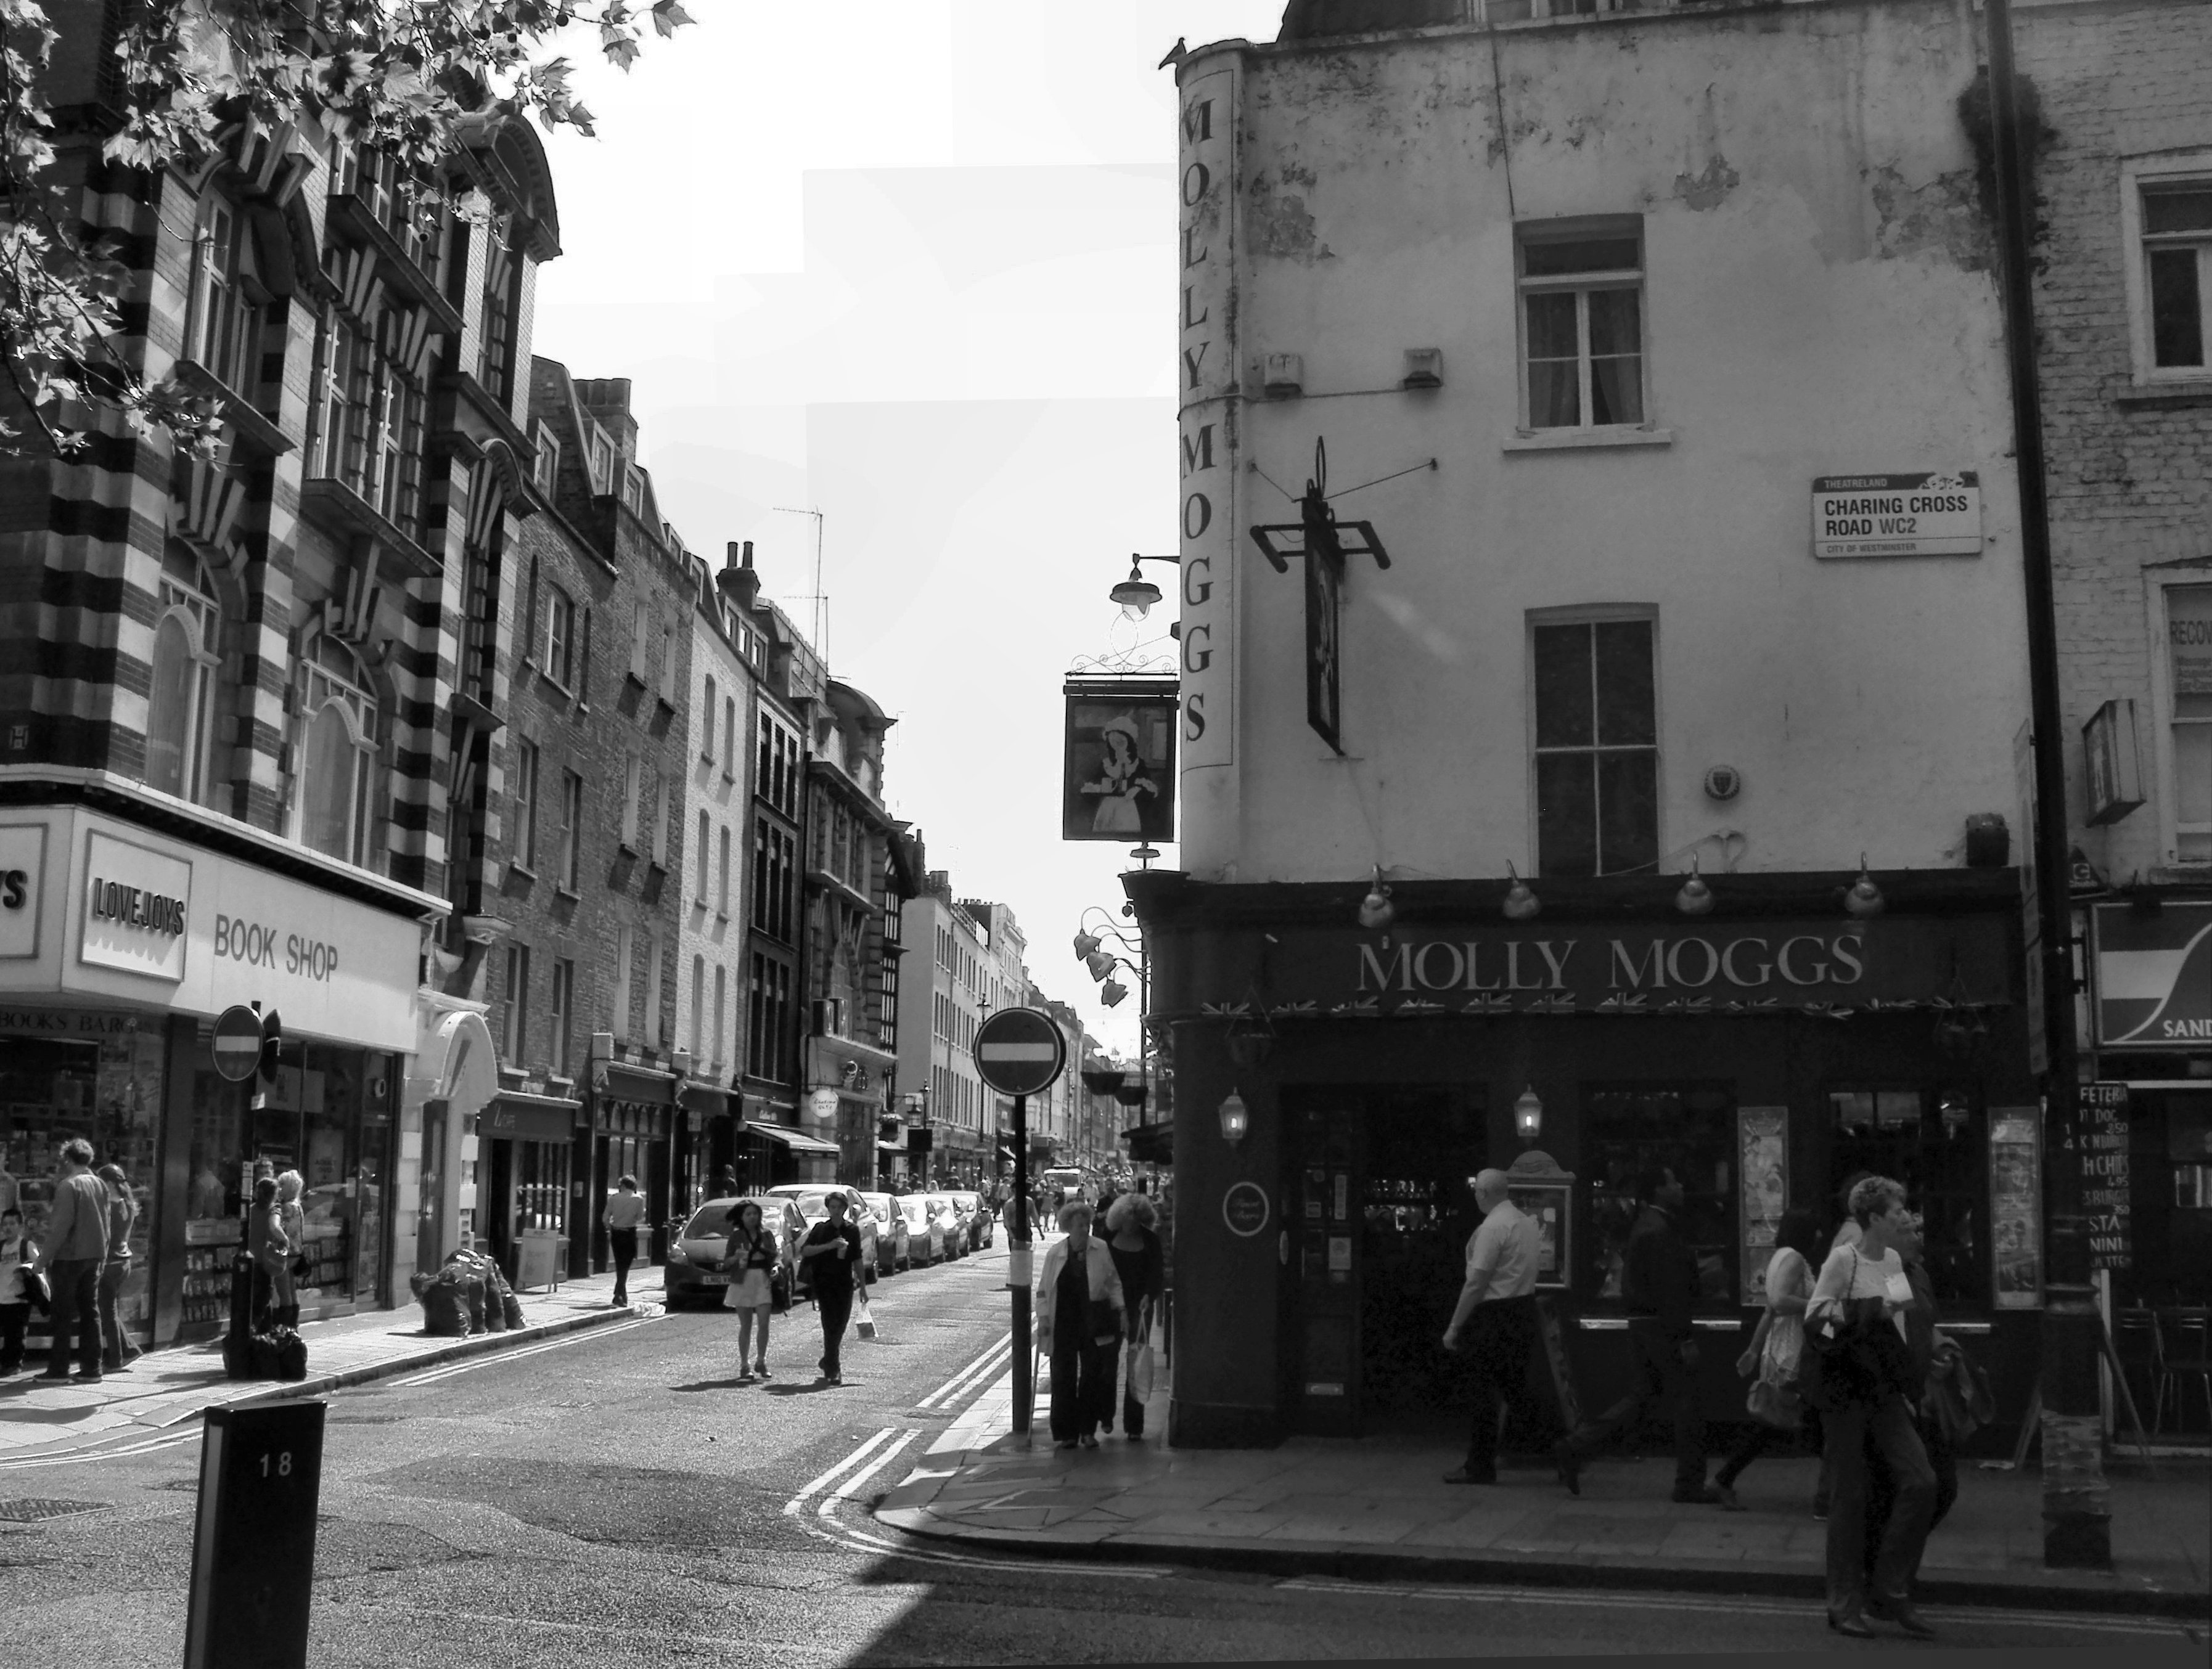 Where Was The Black Cat Old Compton Street London